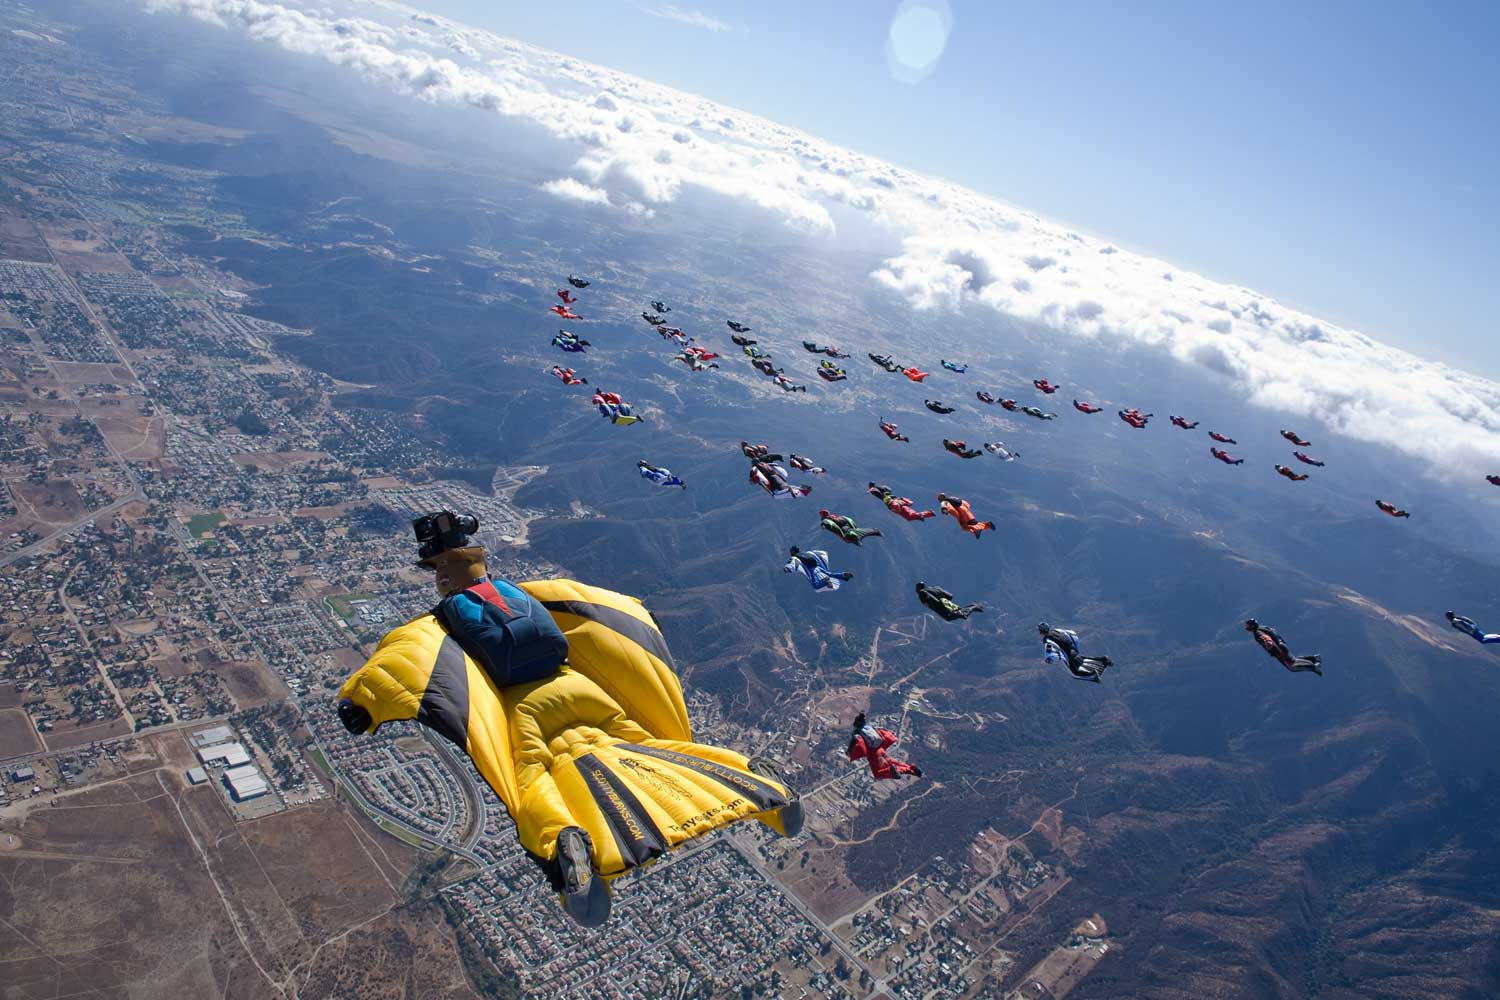 Wingsuit skydivers fly through the air above Lake Elsinore, California traveling at speeds over 100 mph.